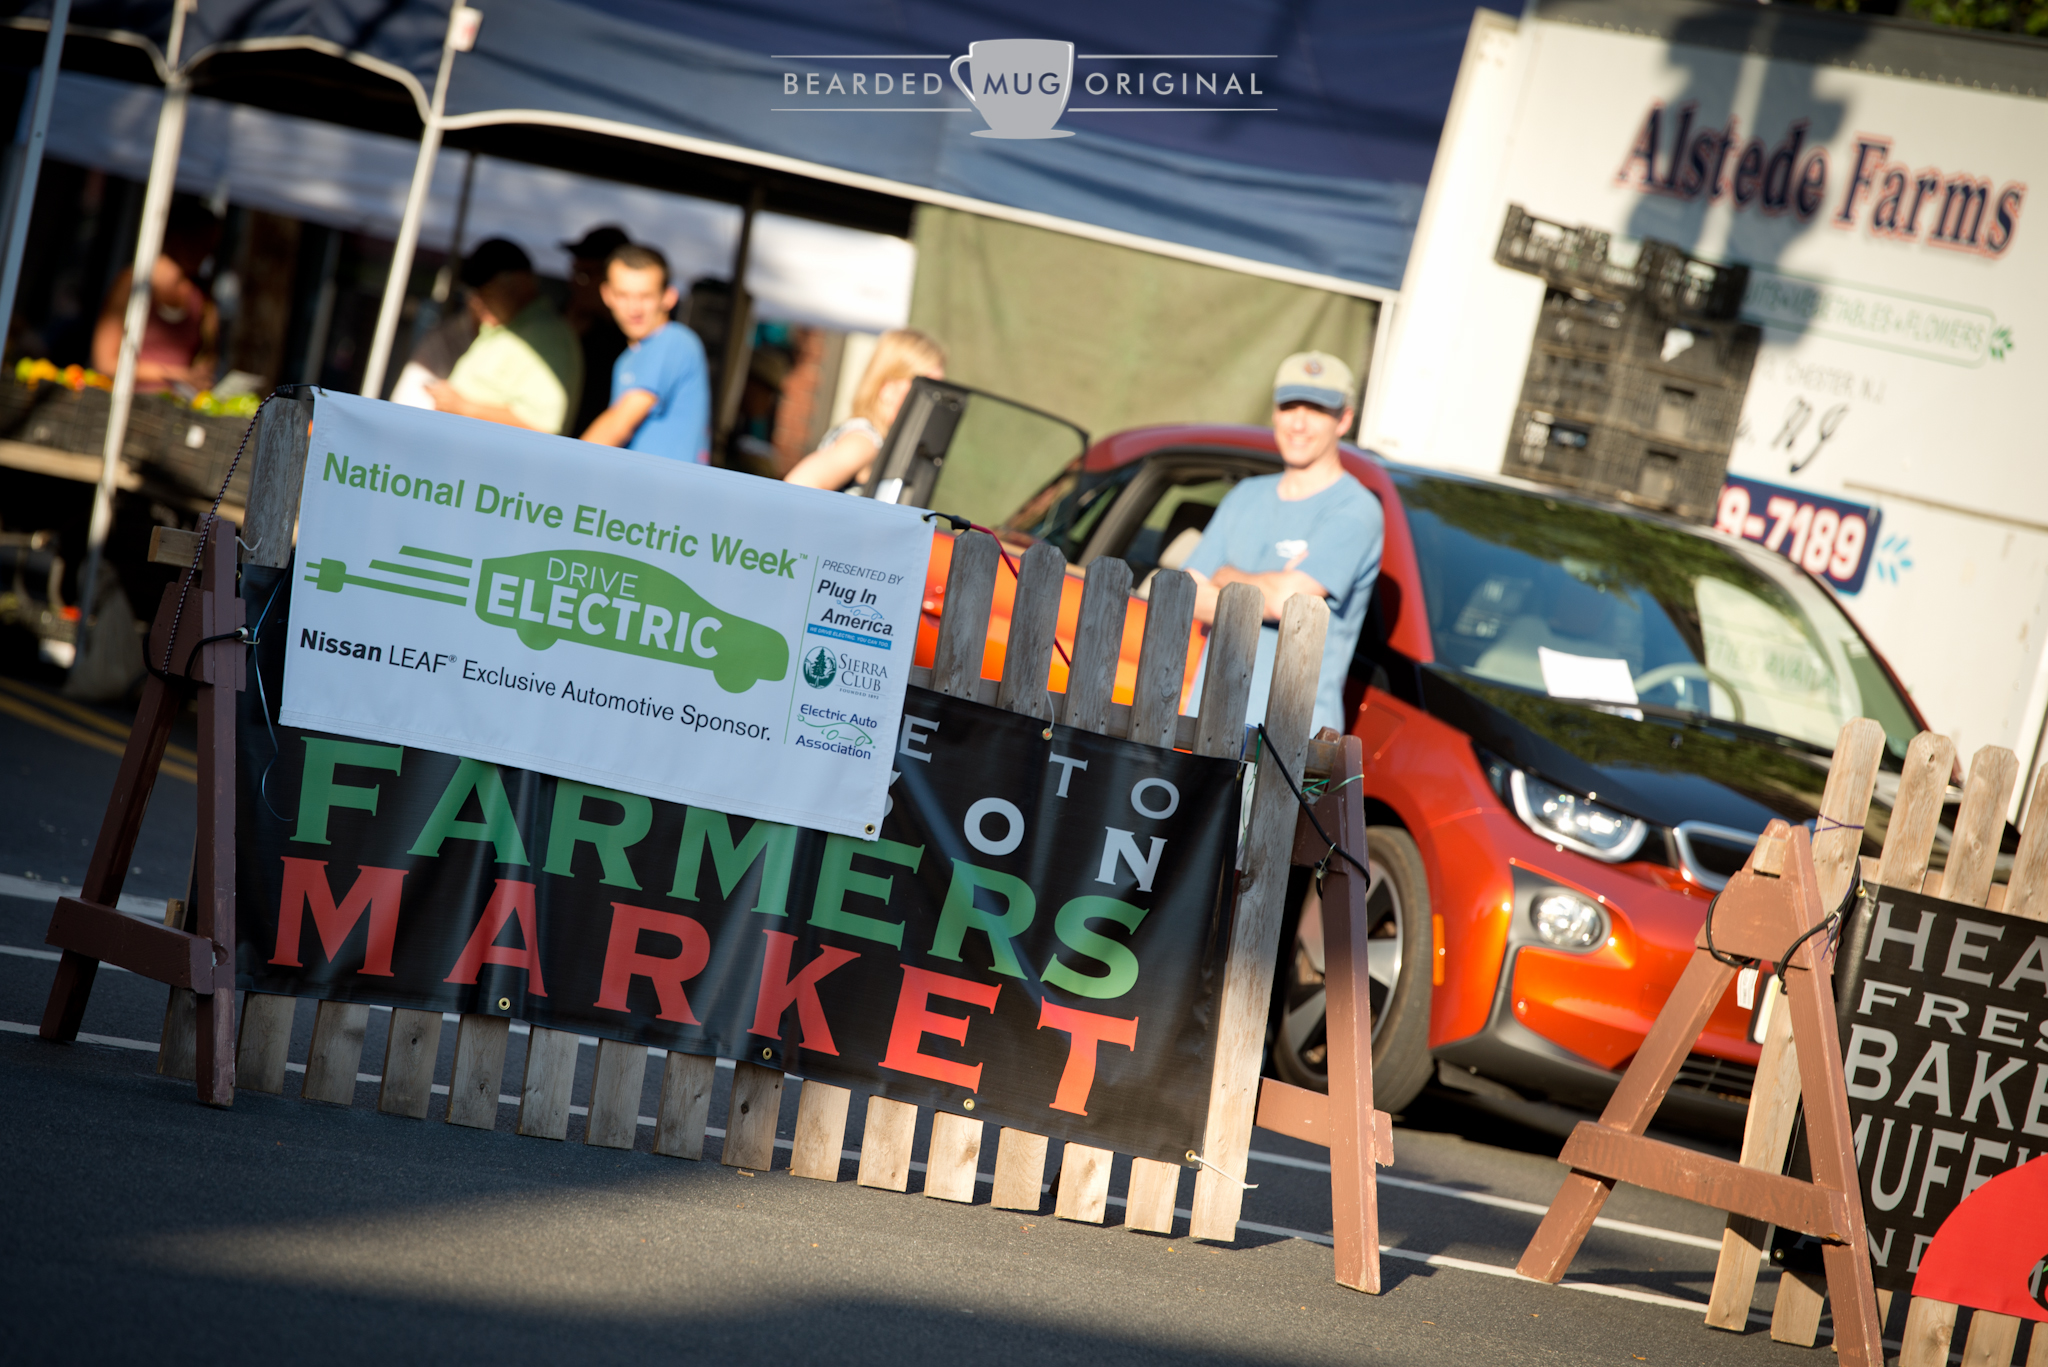 Electric cars were a welcomed enhancement to the Madison Farmer's Market.